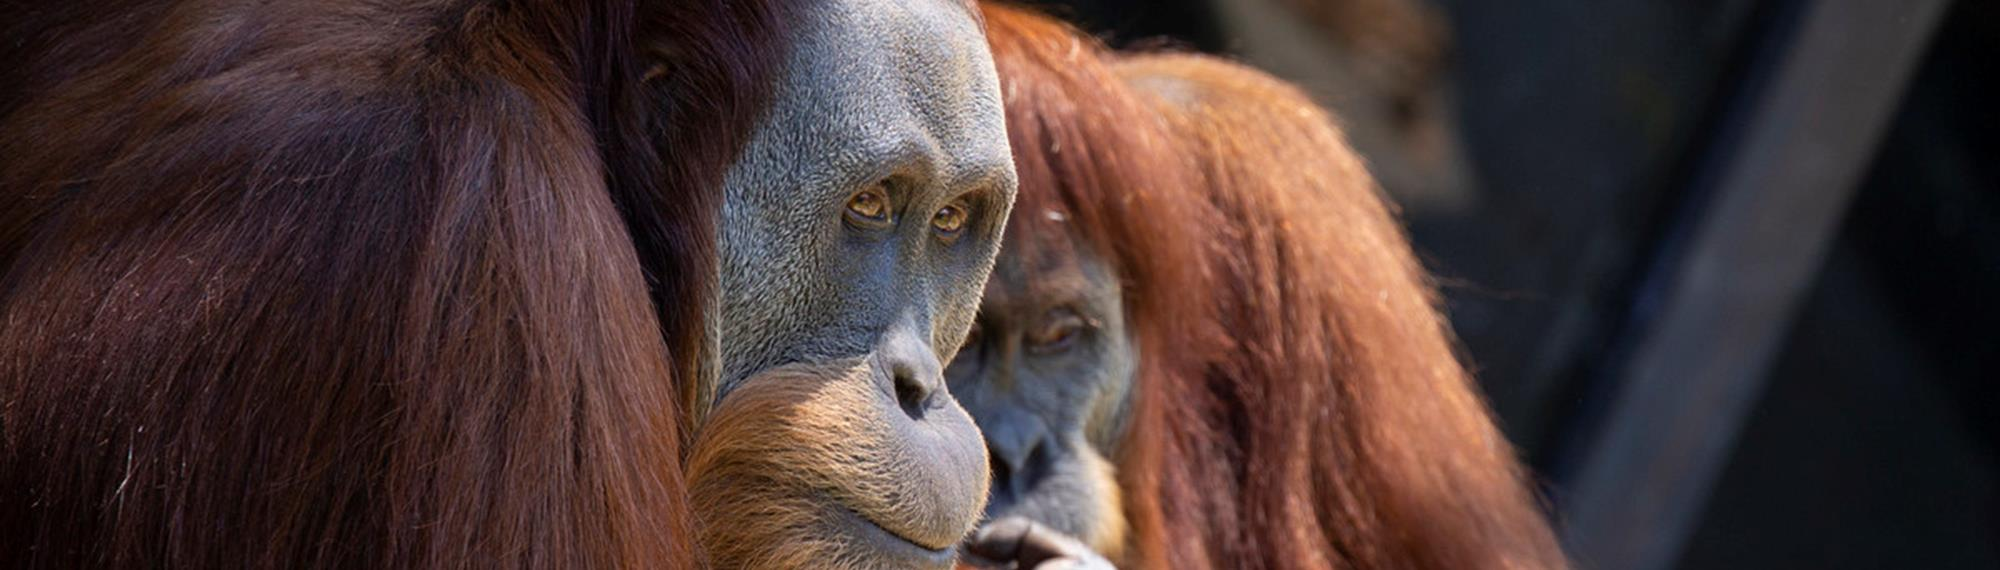 Two Orang Utans Looking Through Glass.